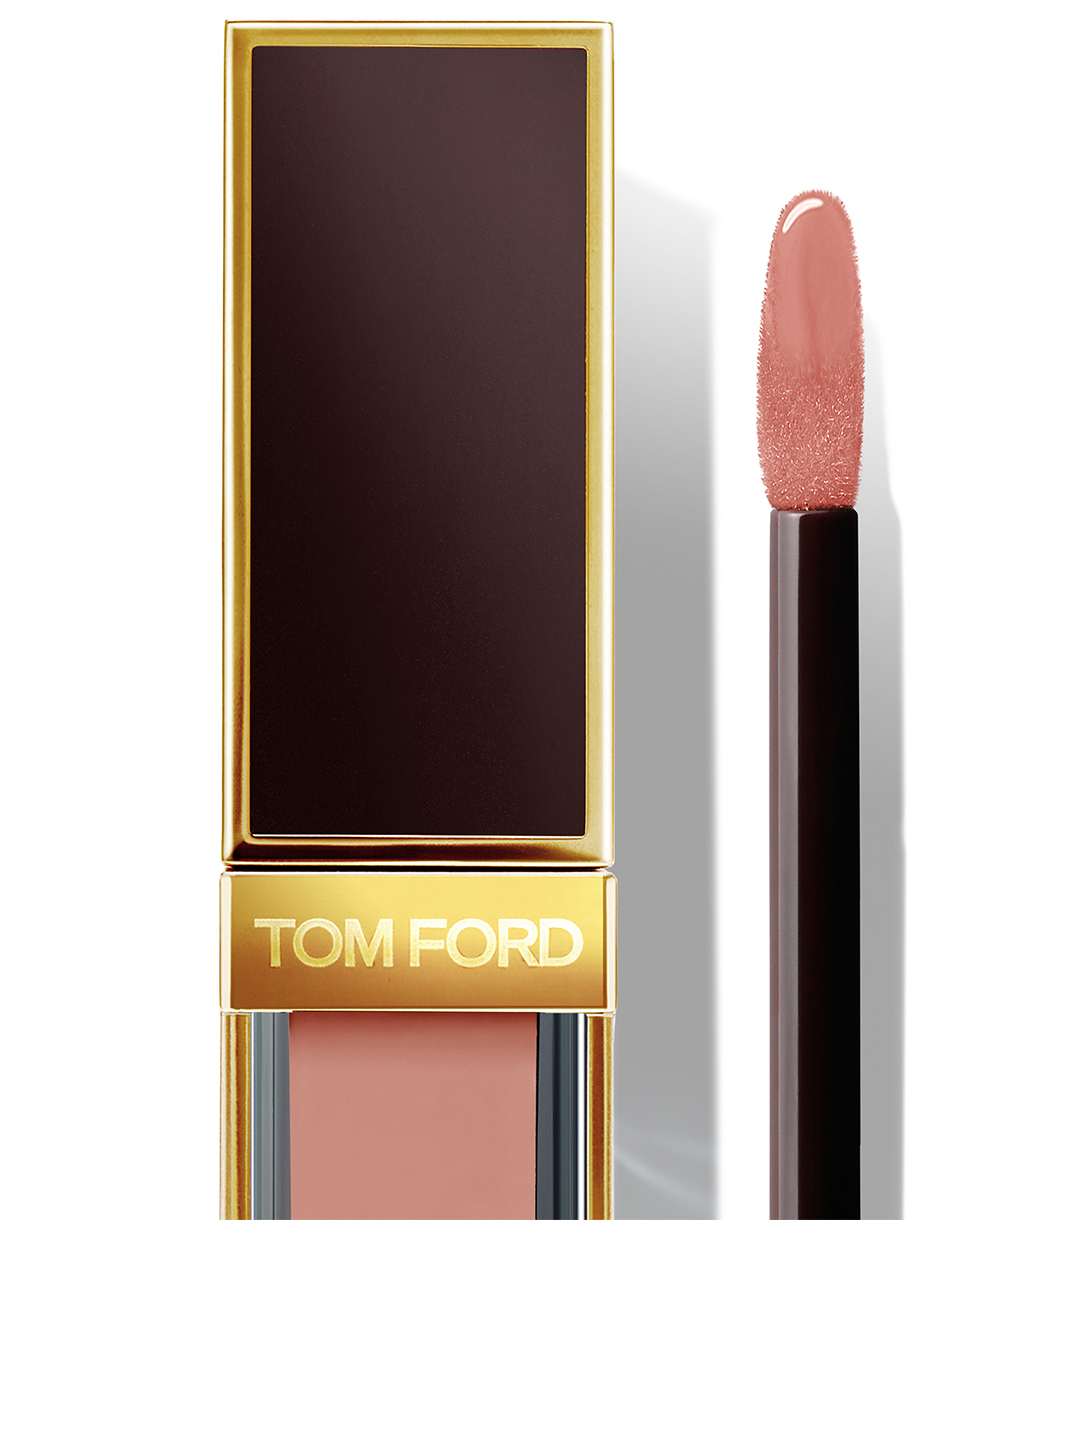 TOM FORD Gloss Luxe Lip Balm Beauty Neutral